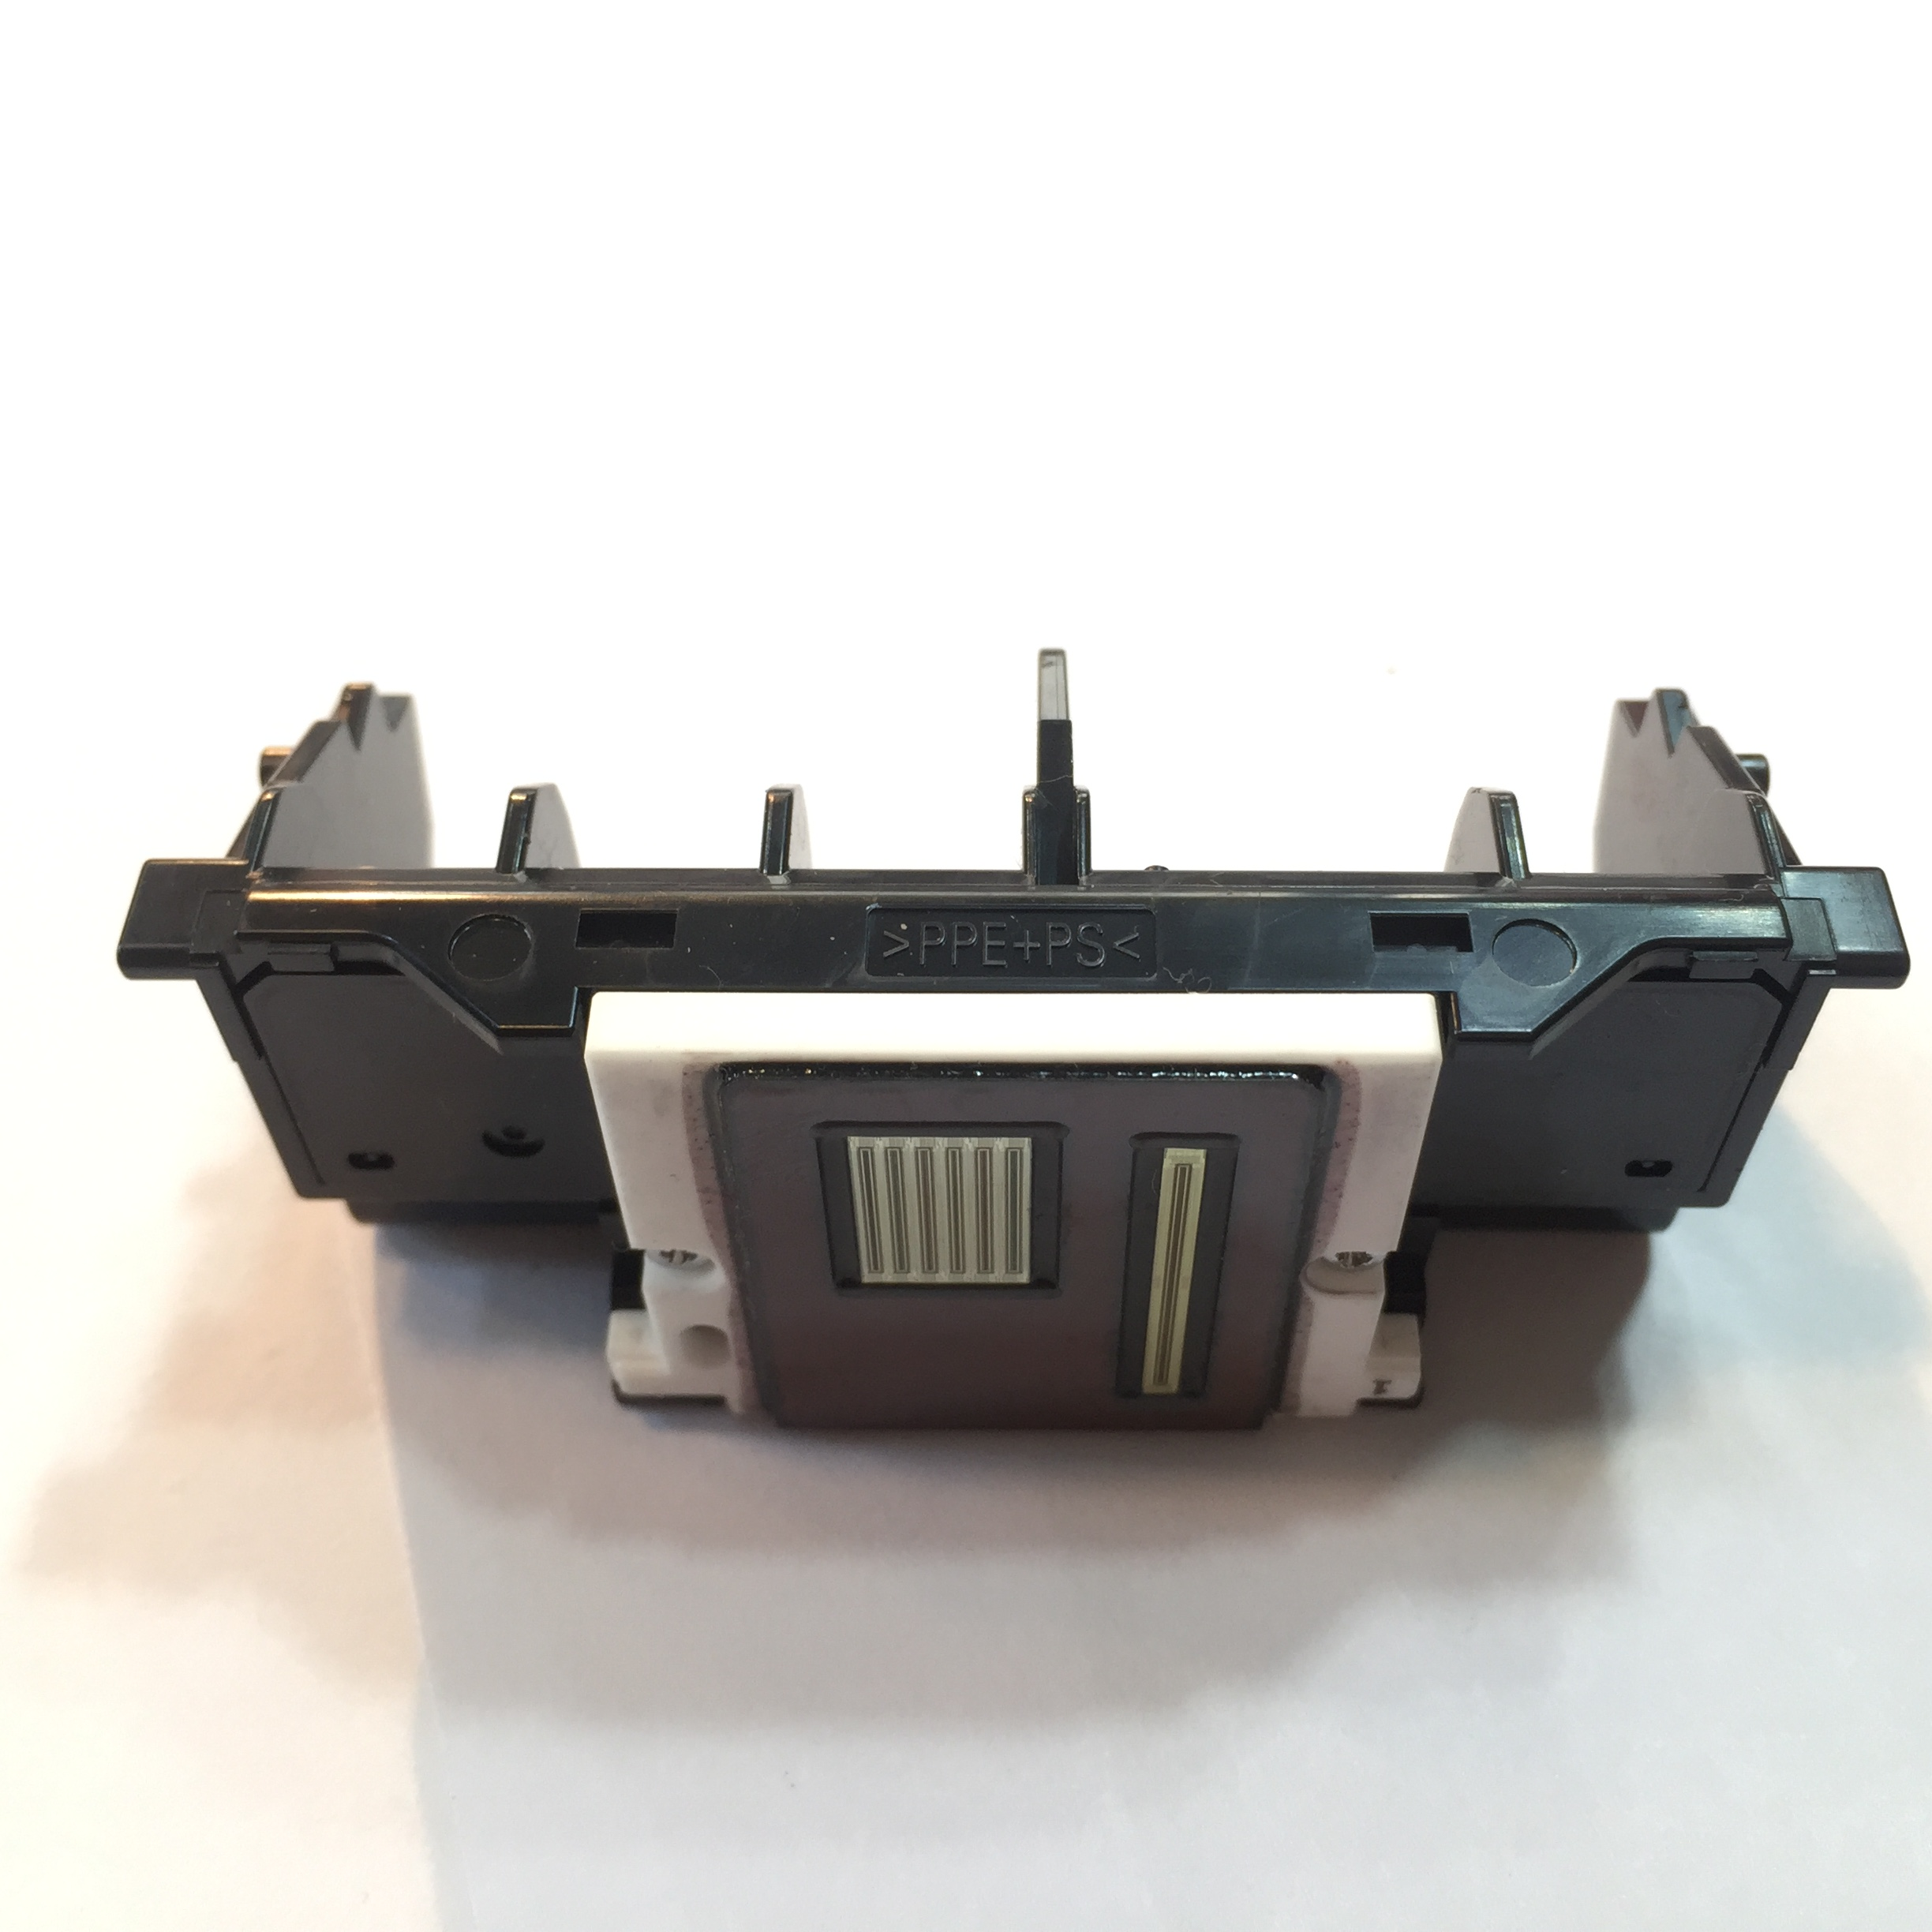 ORIGINAL QY6-0082 Printhead Printer Print Head for Canon iP7220 iP7250 MG5420 MG5440 MG5450 MG5460 MG5520 MG5550 MG6420 MG6450 print head printhead qy6 0082 for canon mx928 mx728 mg5480 ip7280 ip7220 ip7250 mg5420 mg5440 mg5450 mg5460 mg5520 mg5740